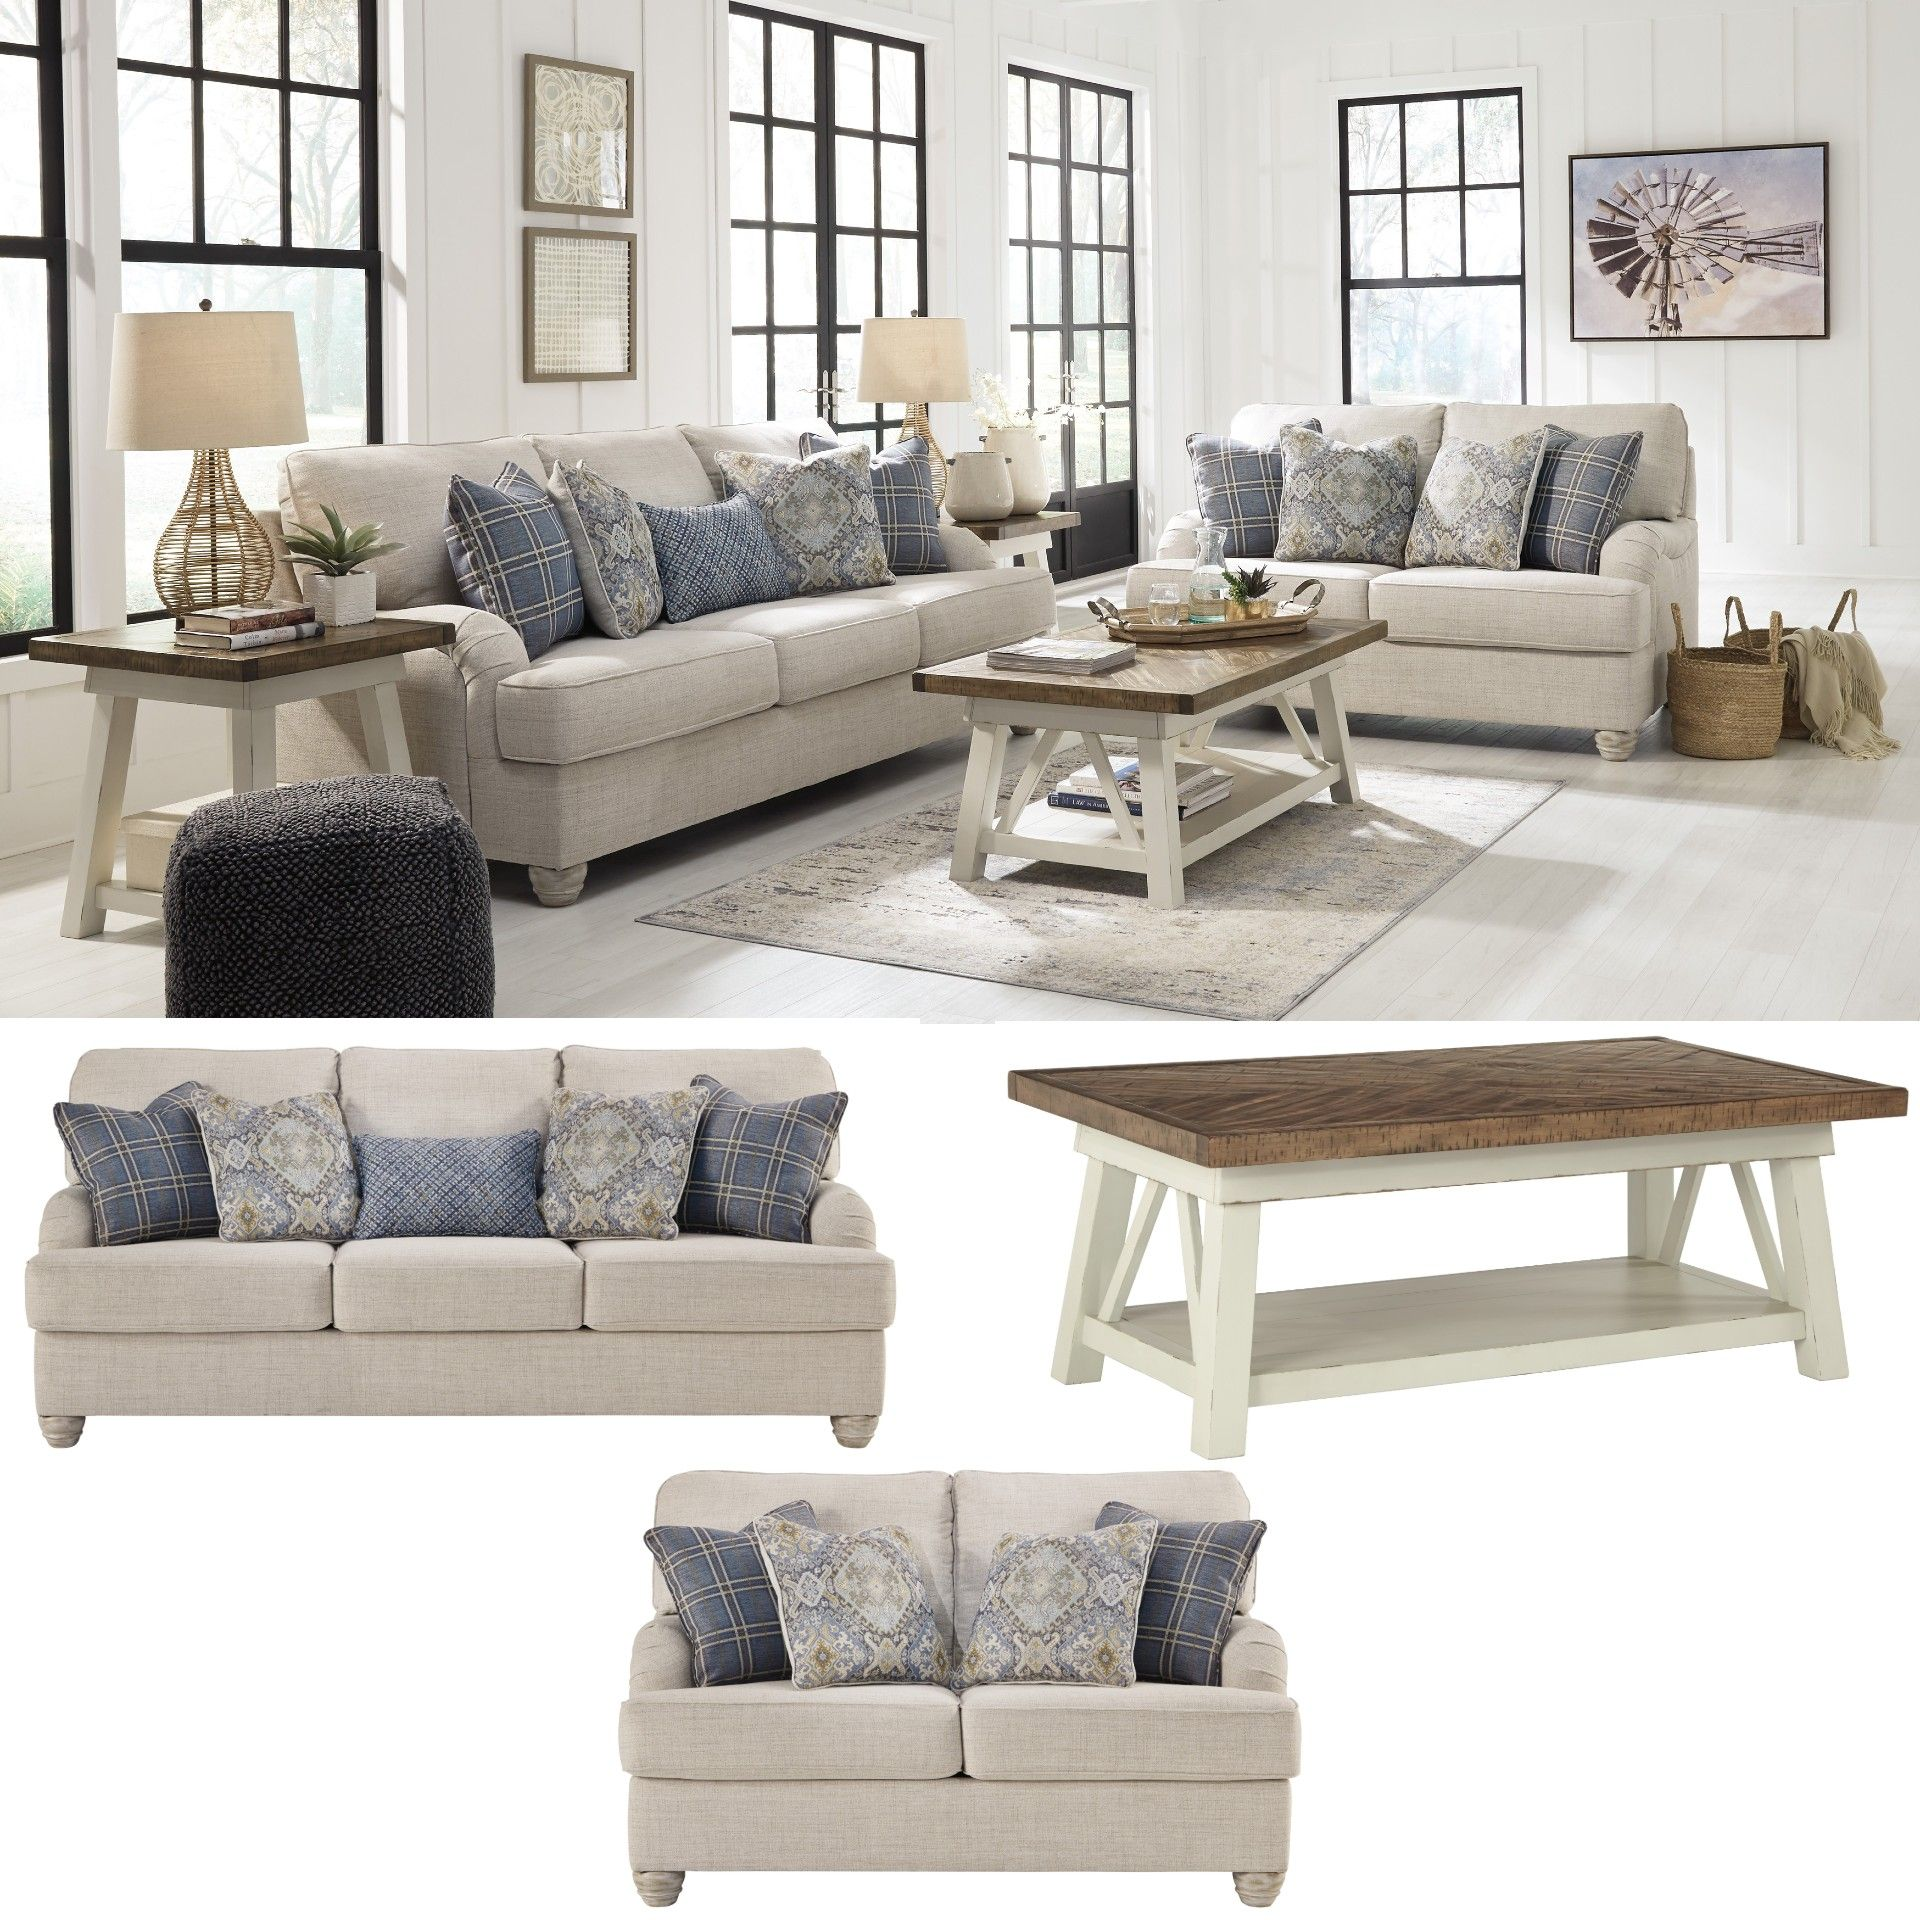 Traemore -Linen- 5PC Living Room Collection In 2020